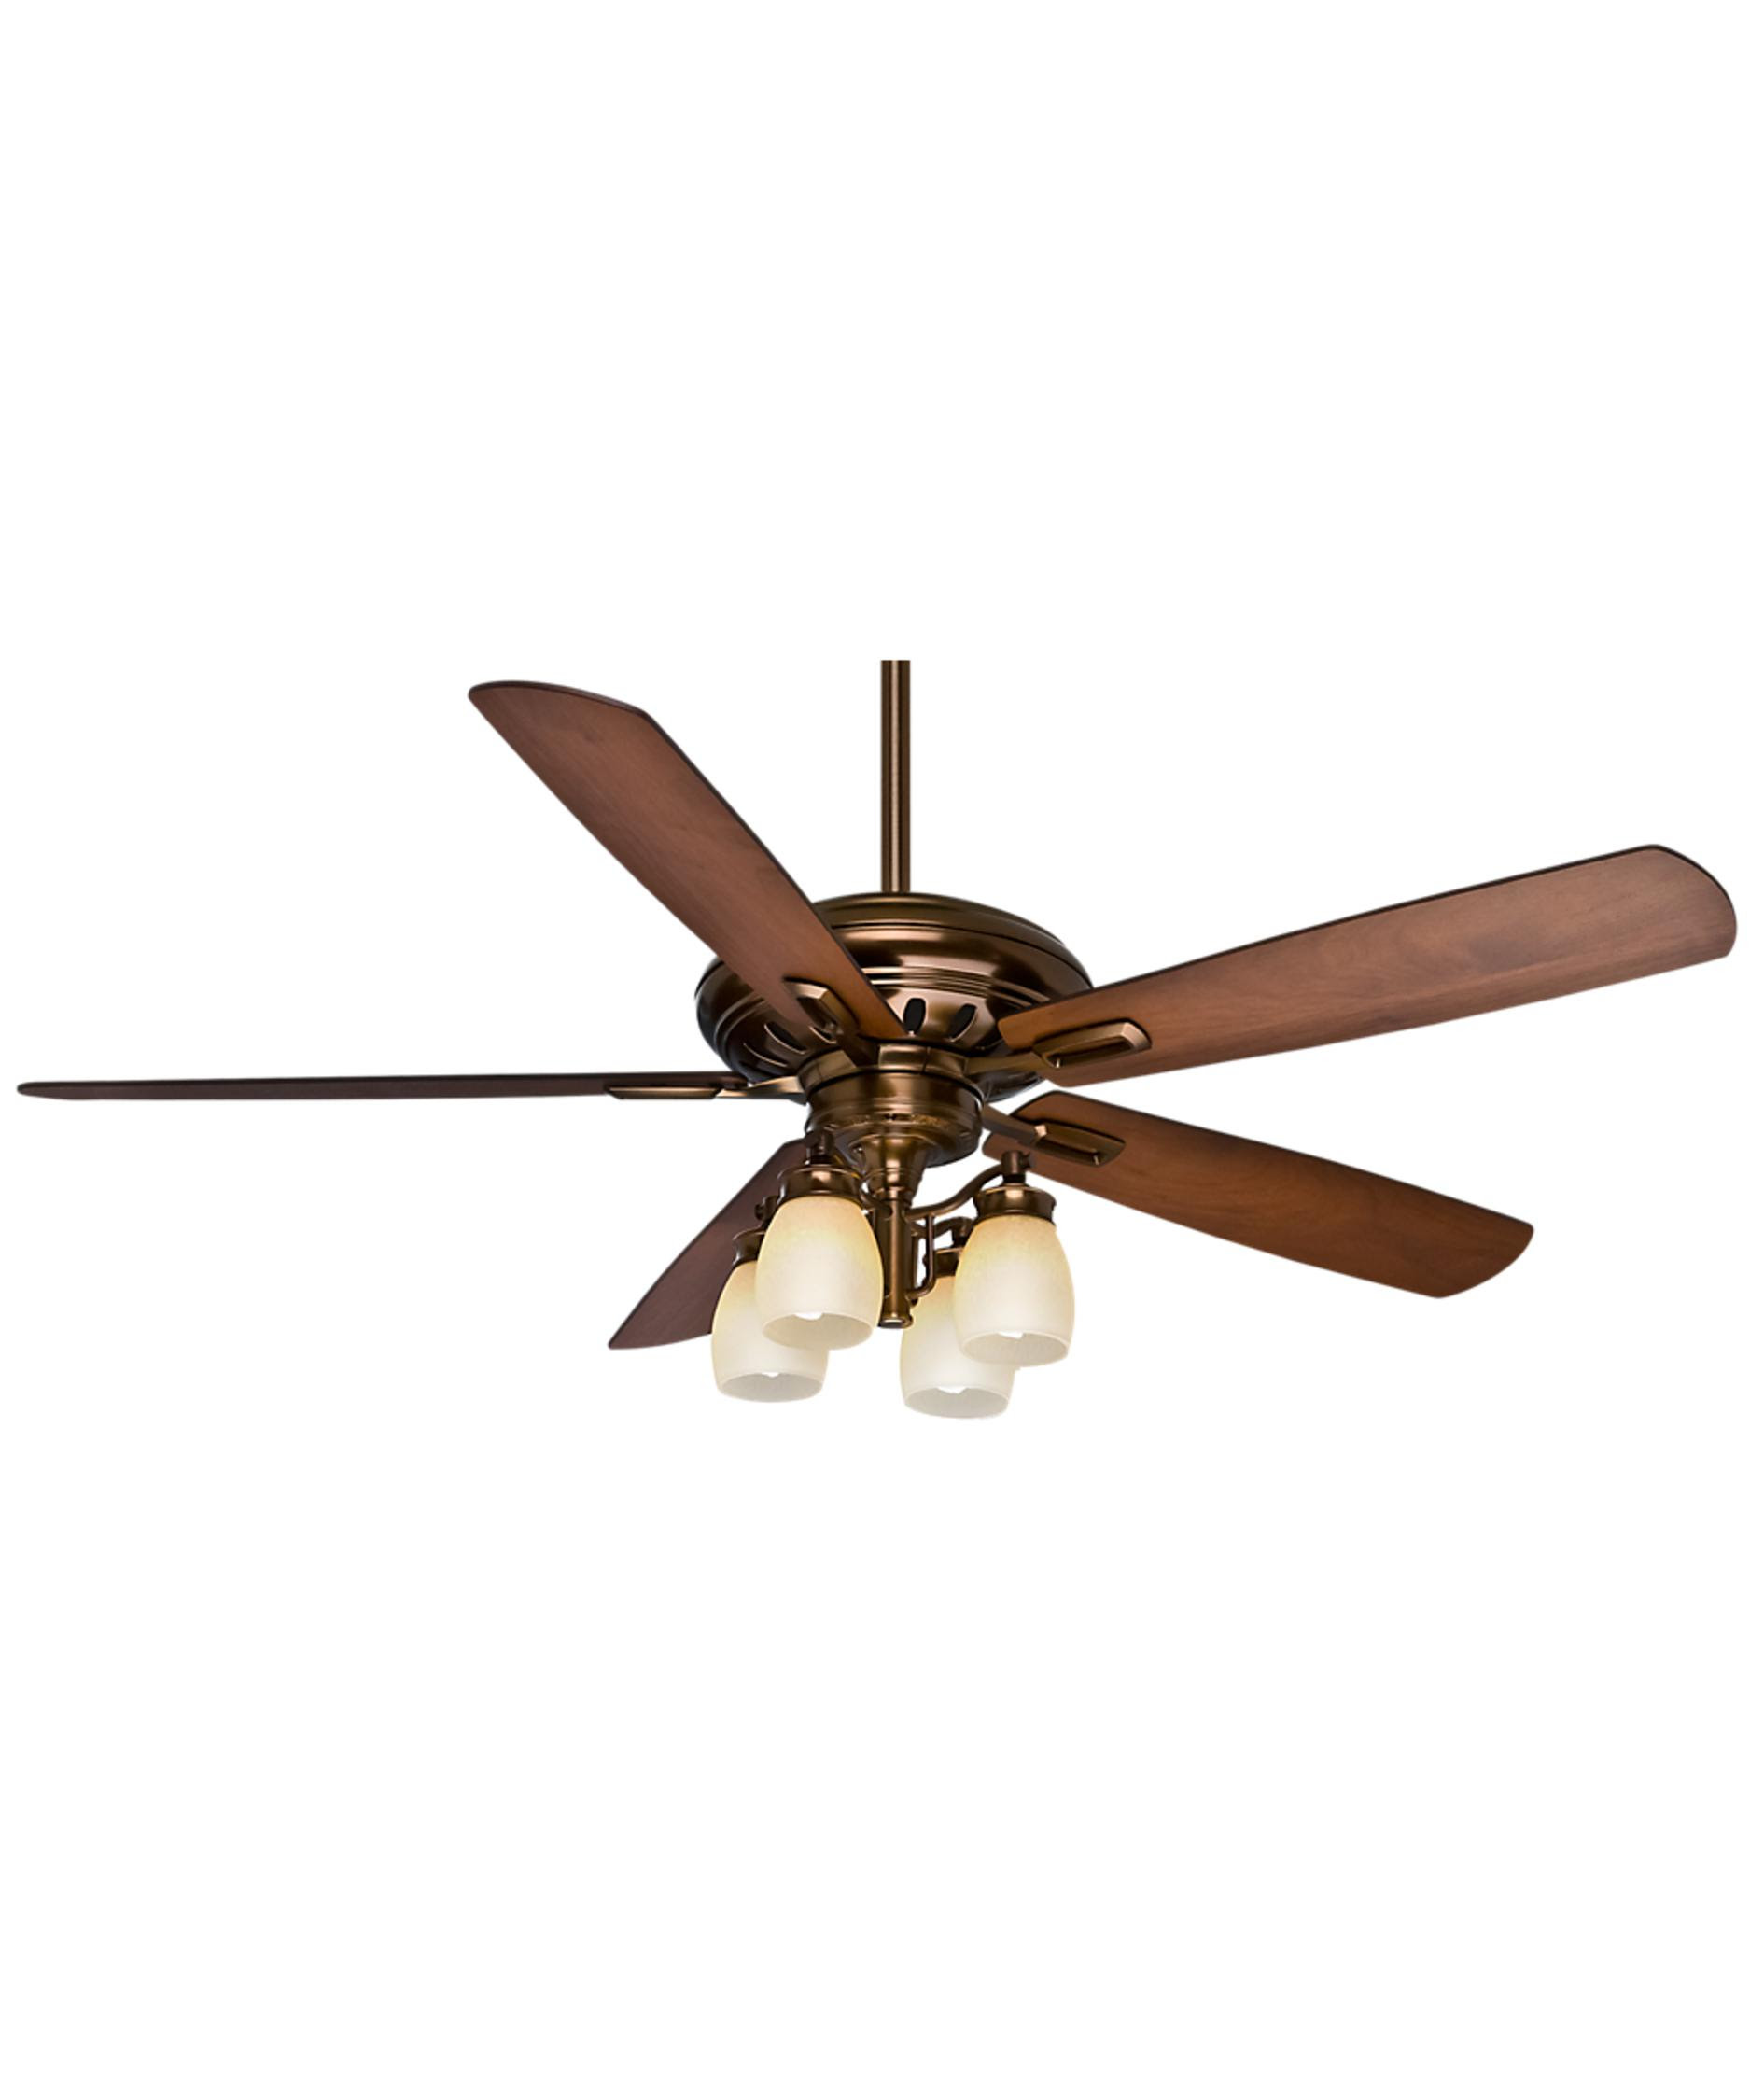 60 Inch Ceiling Fan With Light Kit Capitol Lighting 1800lighting Light Kit Included Ceiling